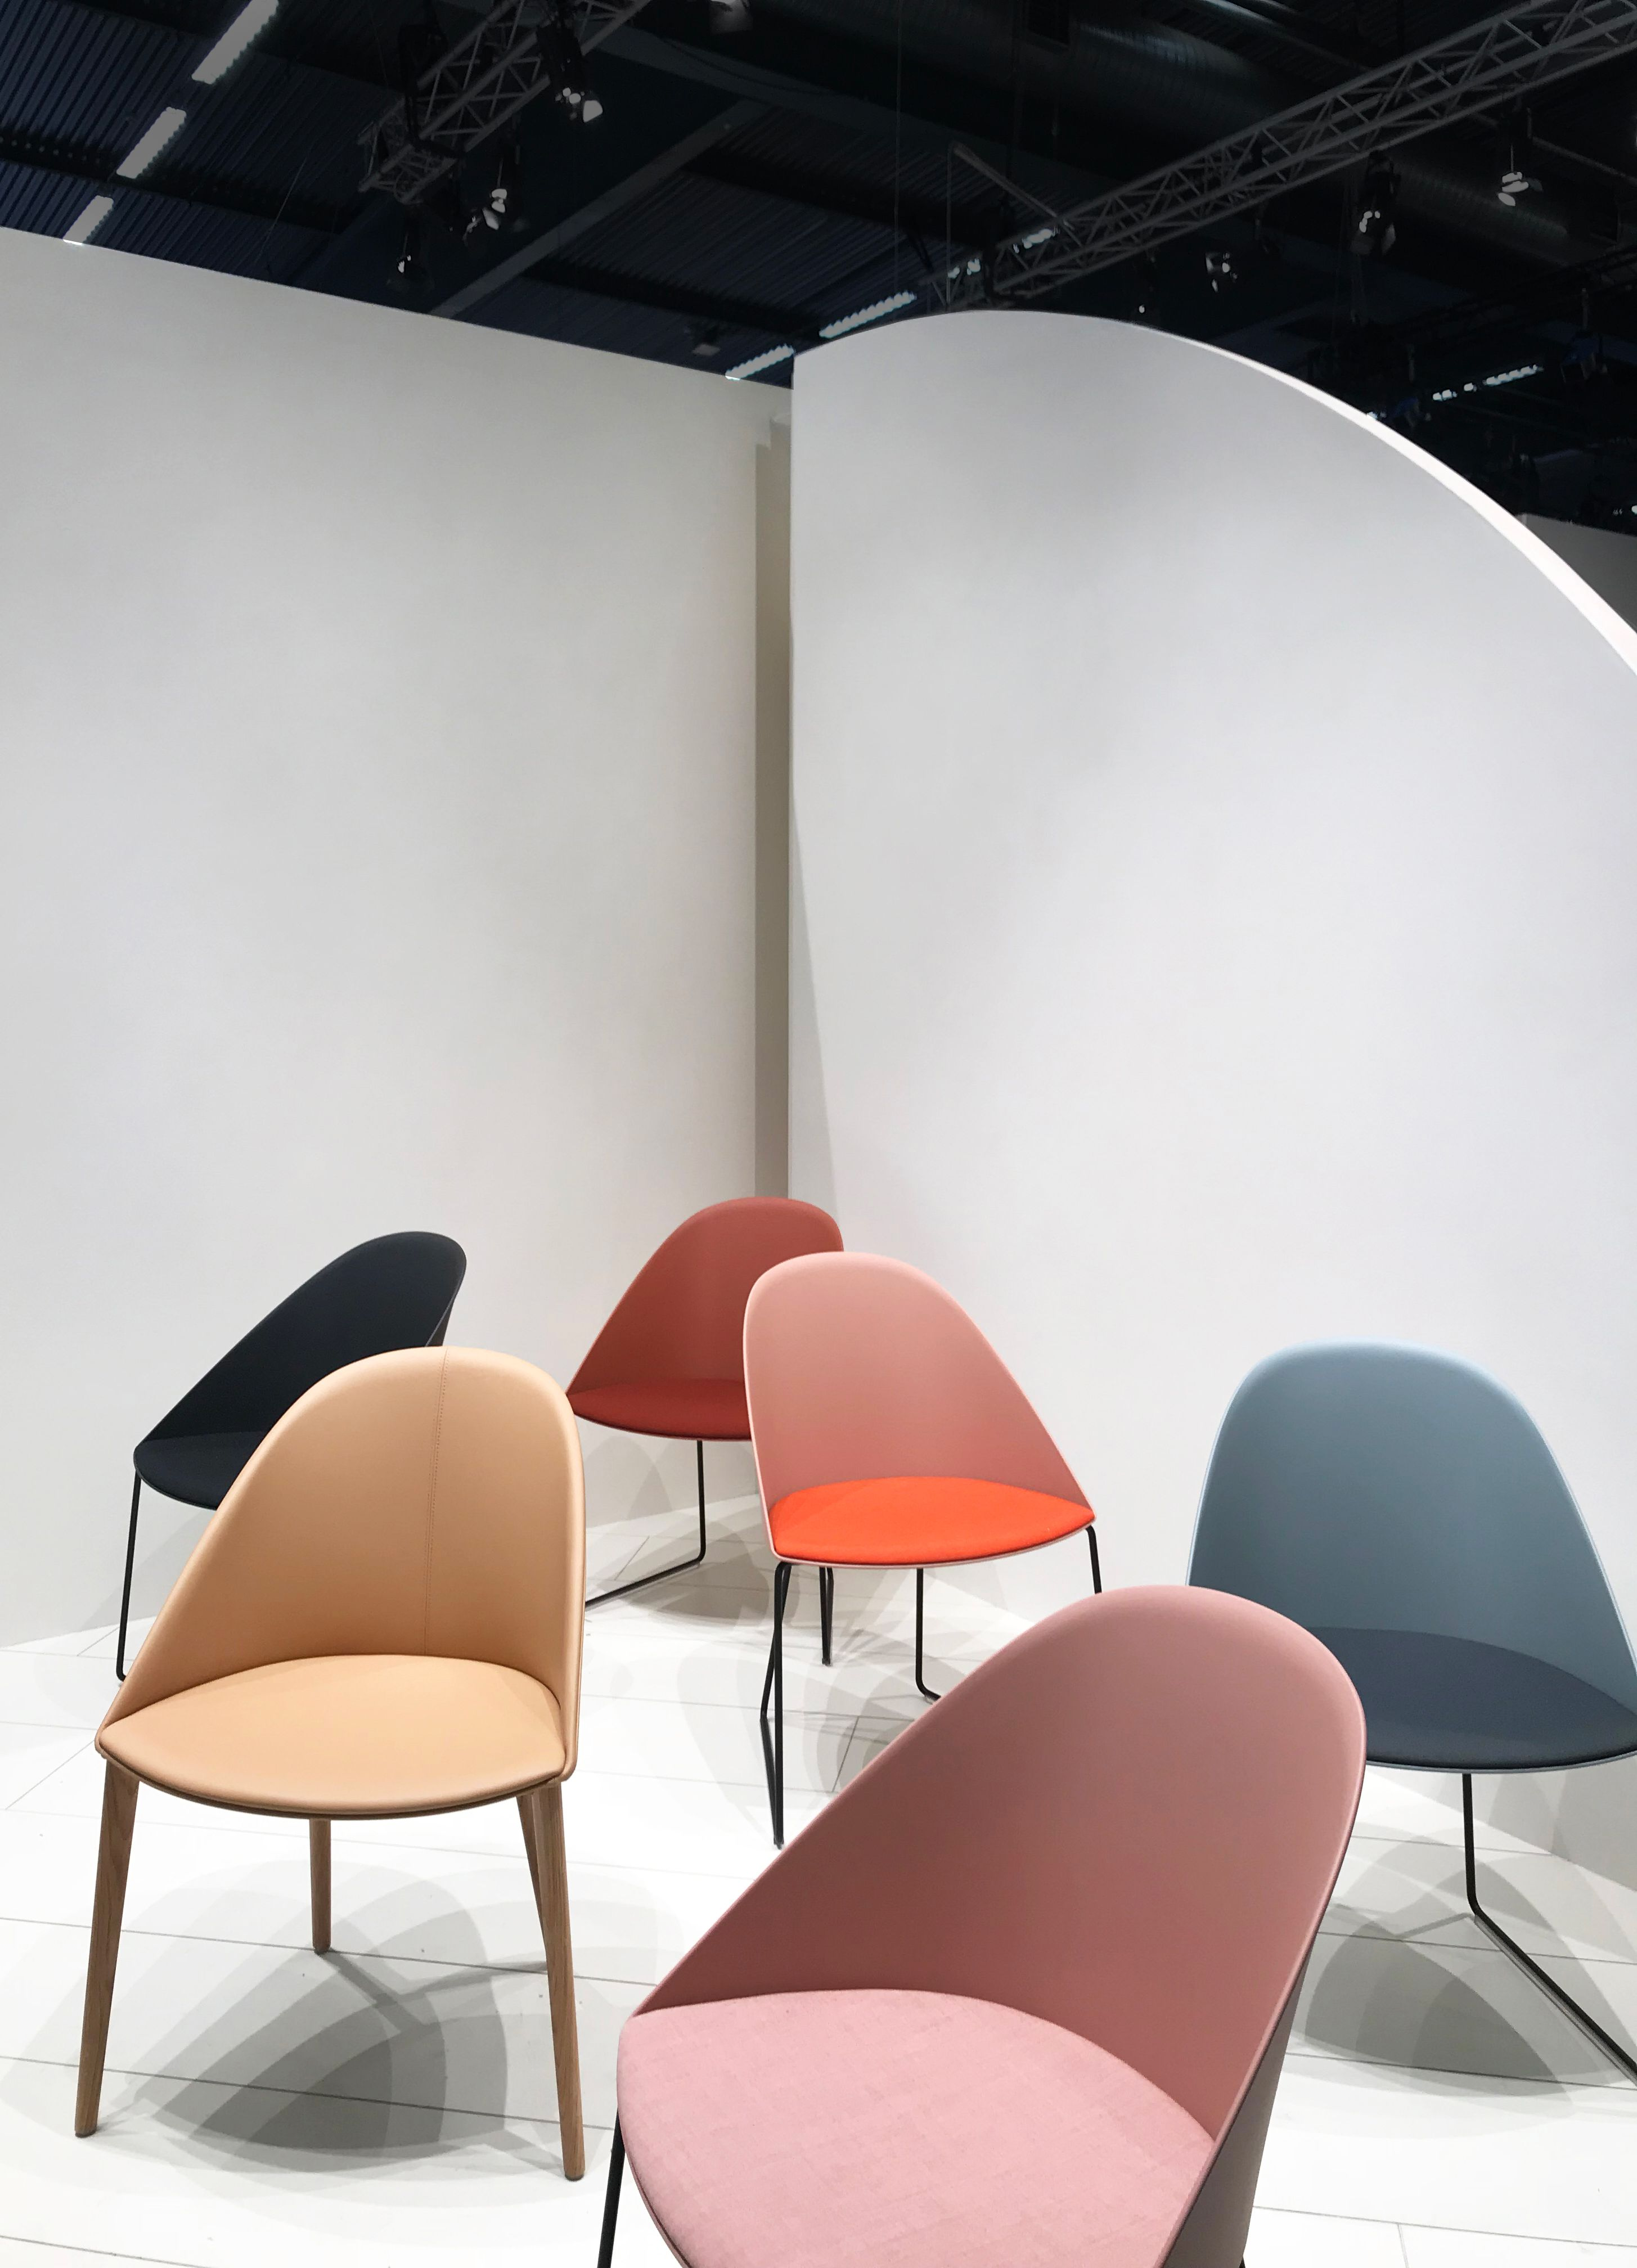 Cila by Arper, designed by LievoreAltherr, as presented